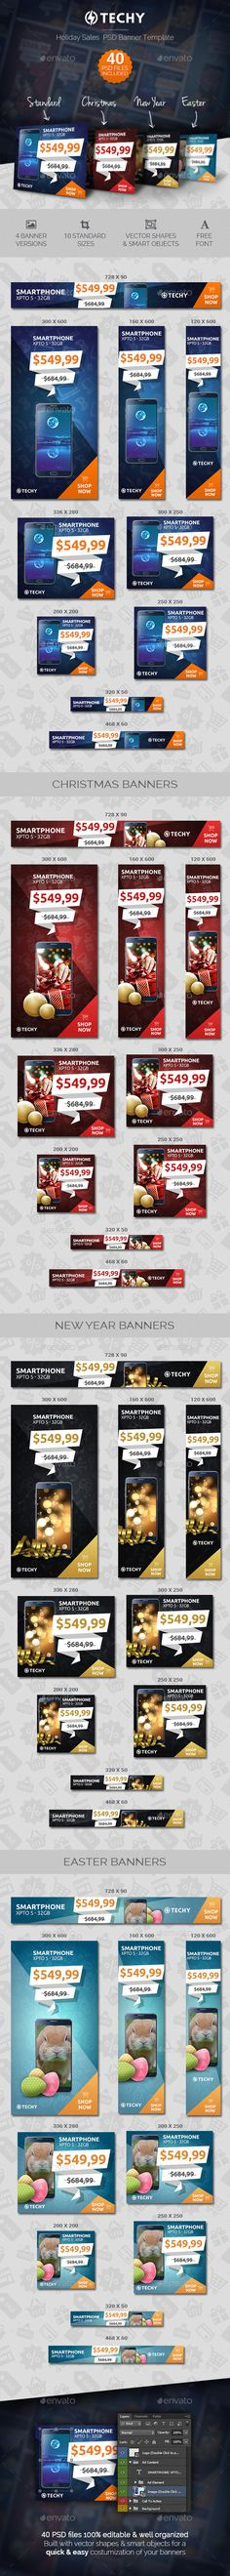 Techy - Holiday Sales PSD Banner Template